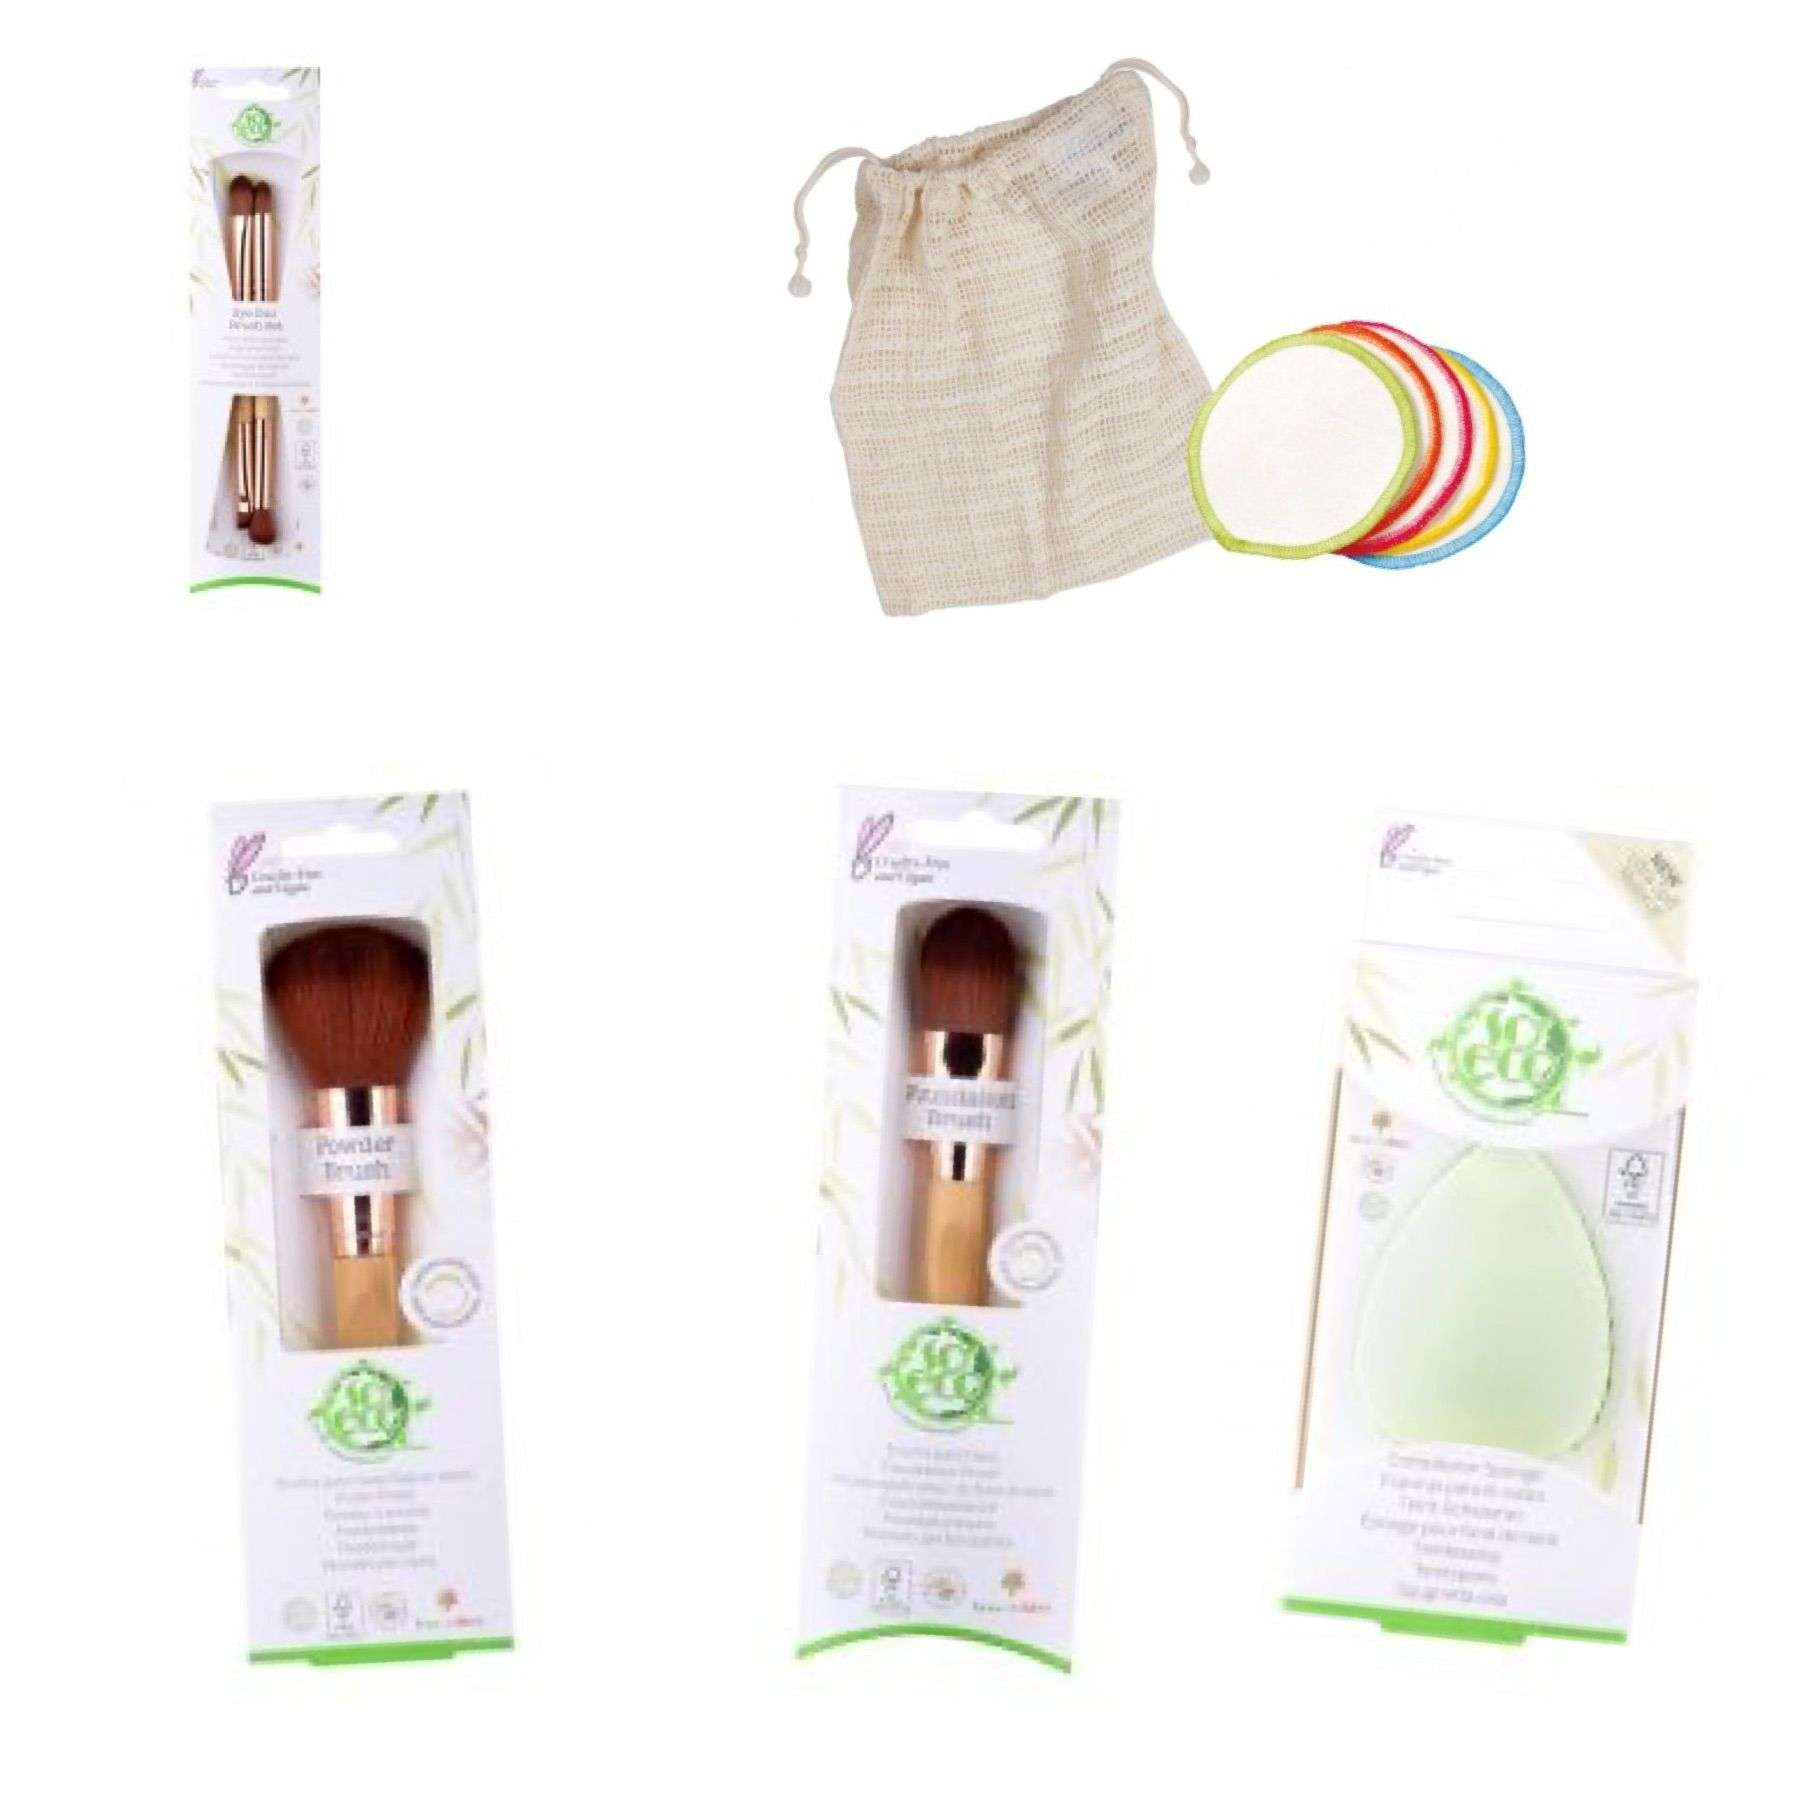 EcoFriendly Vegan Make Up Brushes and Make Up Remover